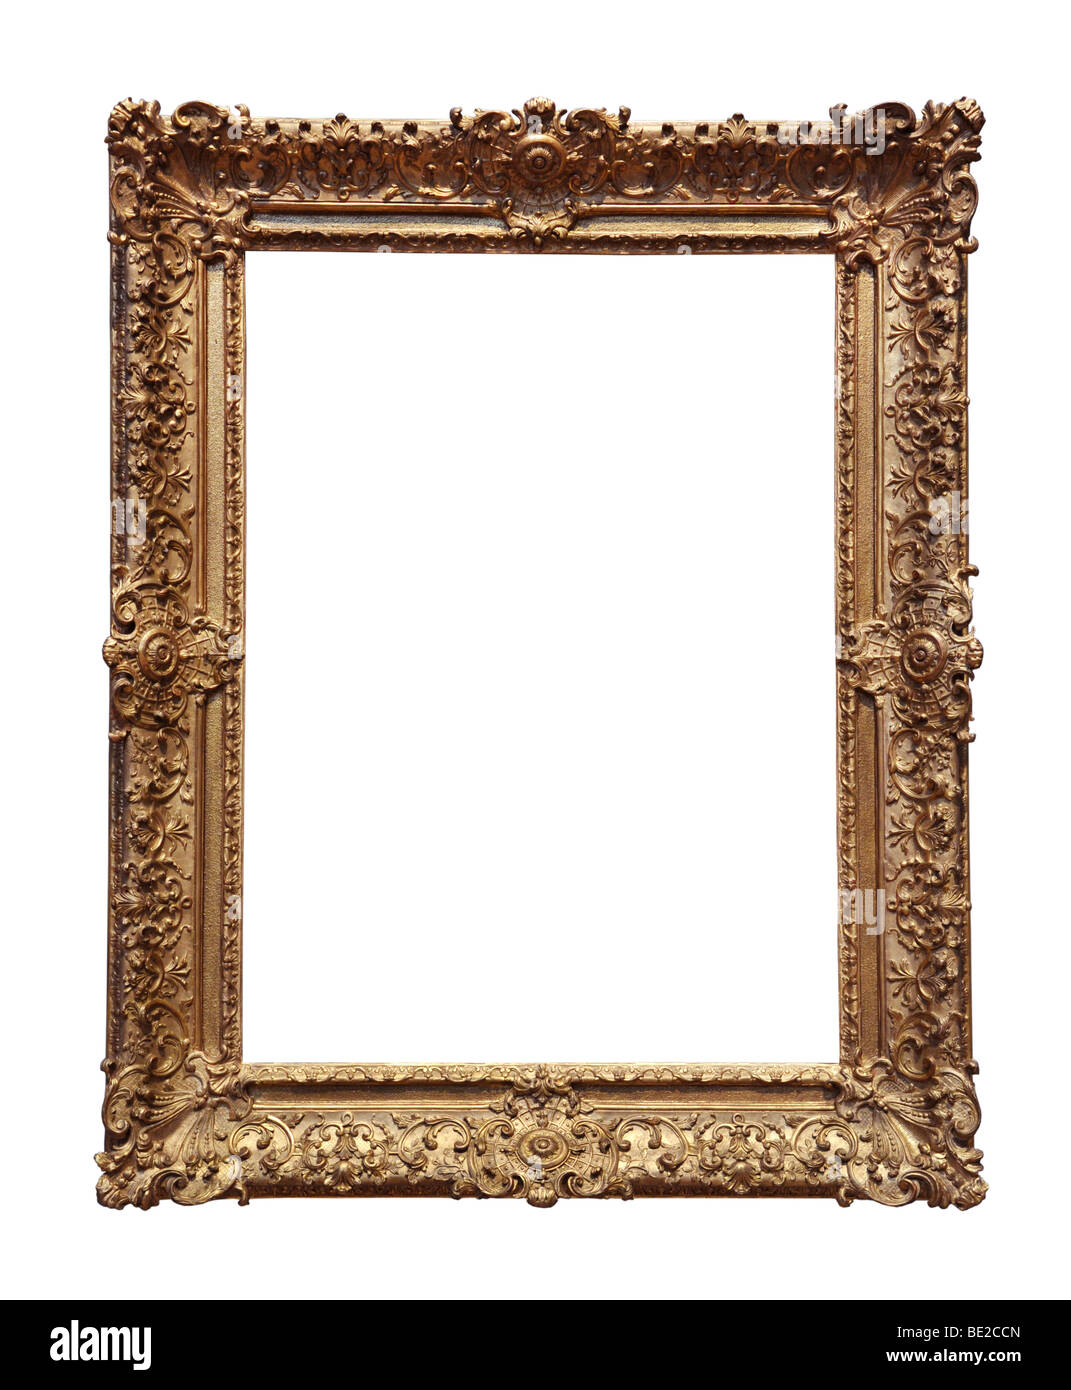 Ornate Baroque gold frame isolated over a white background - Stock Image